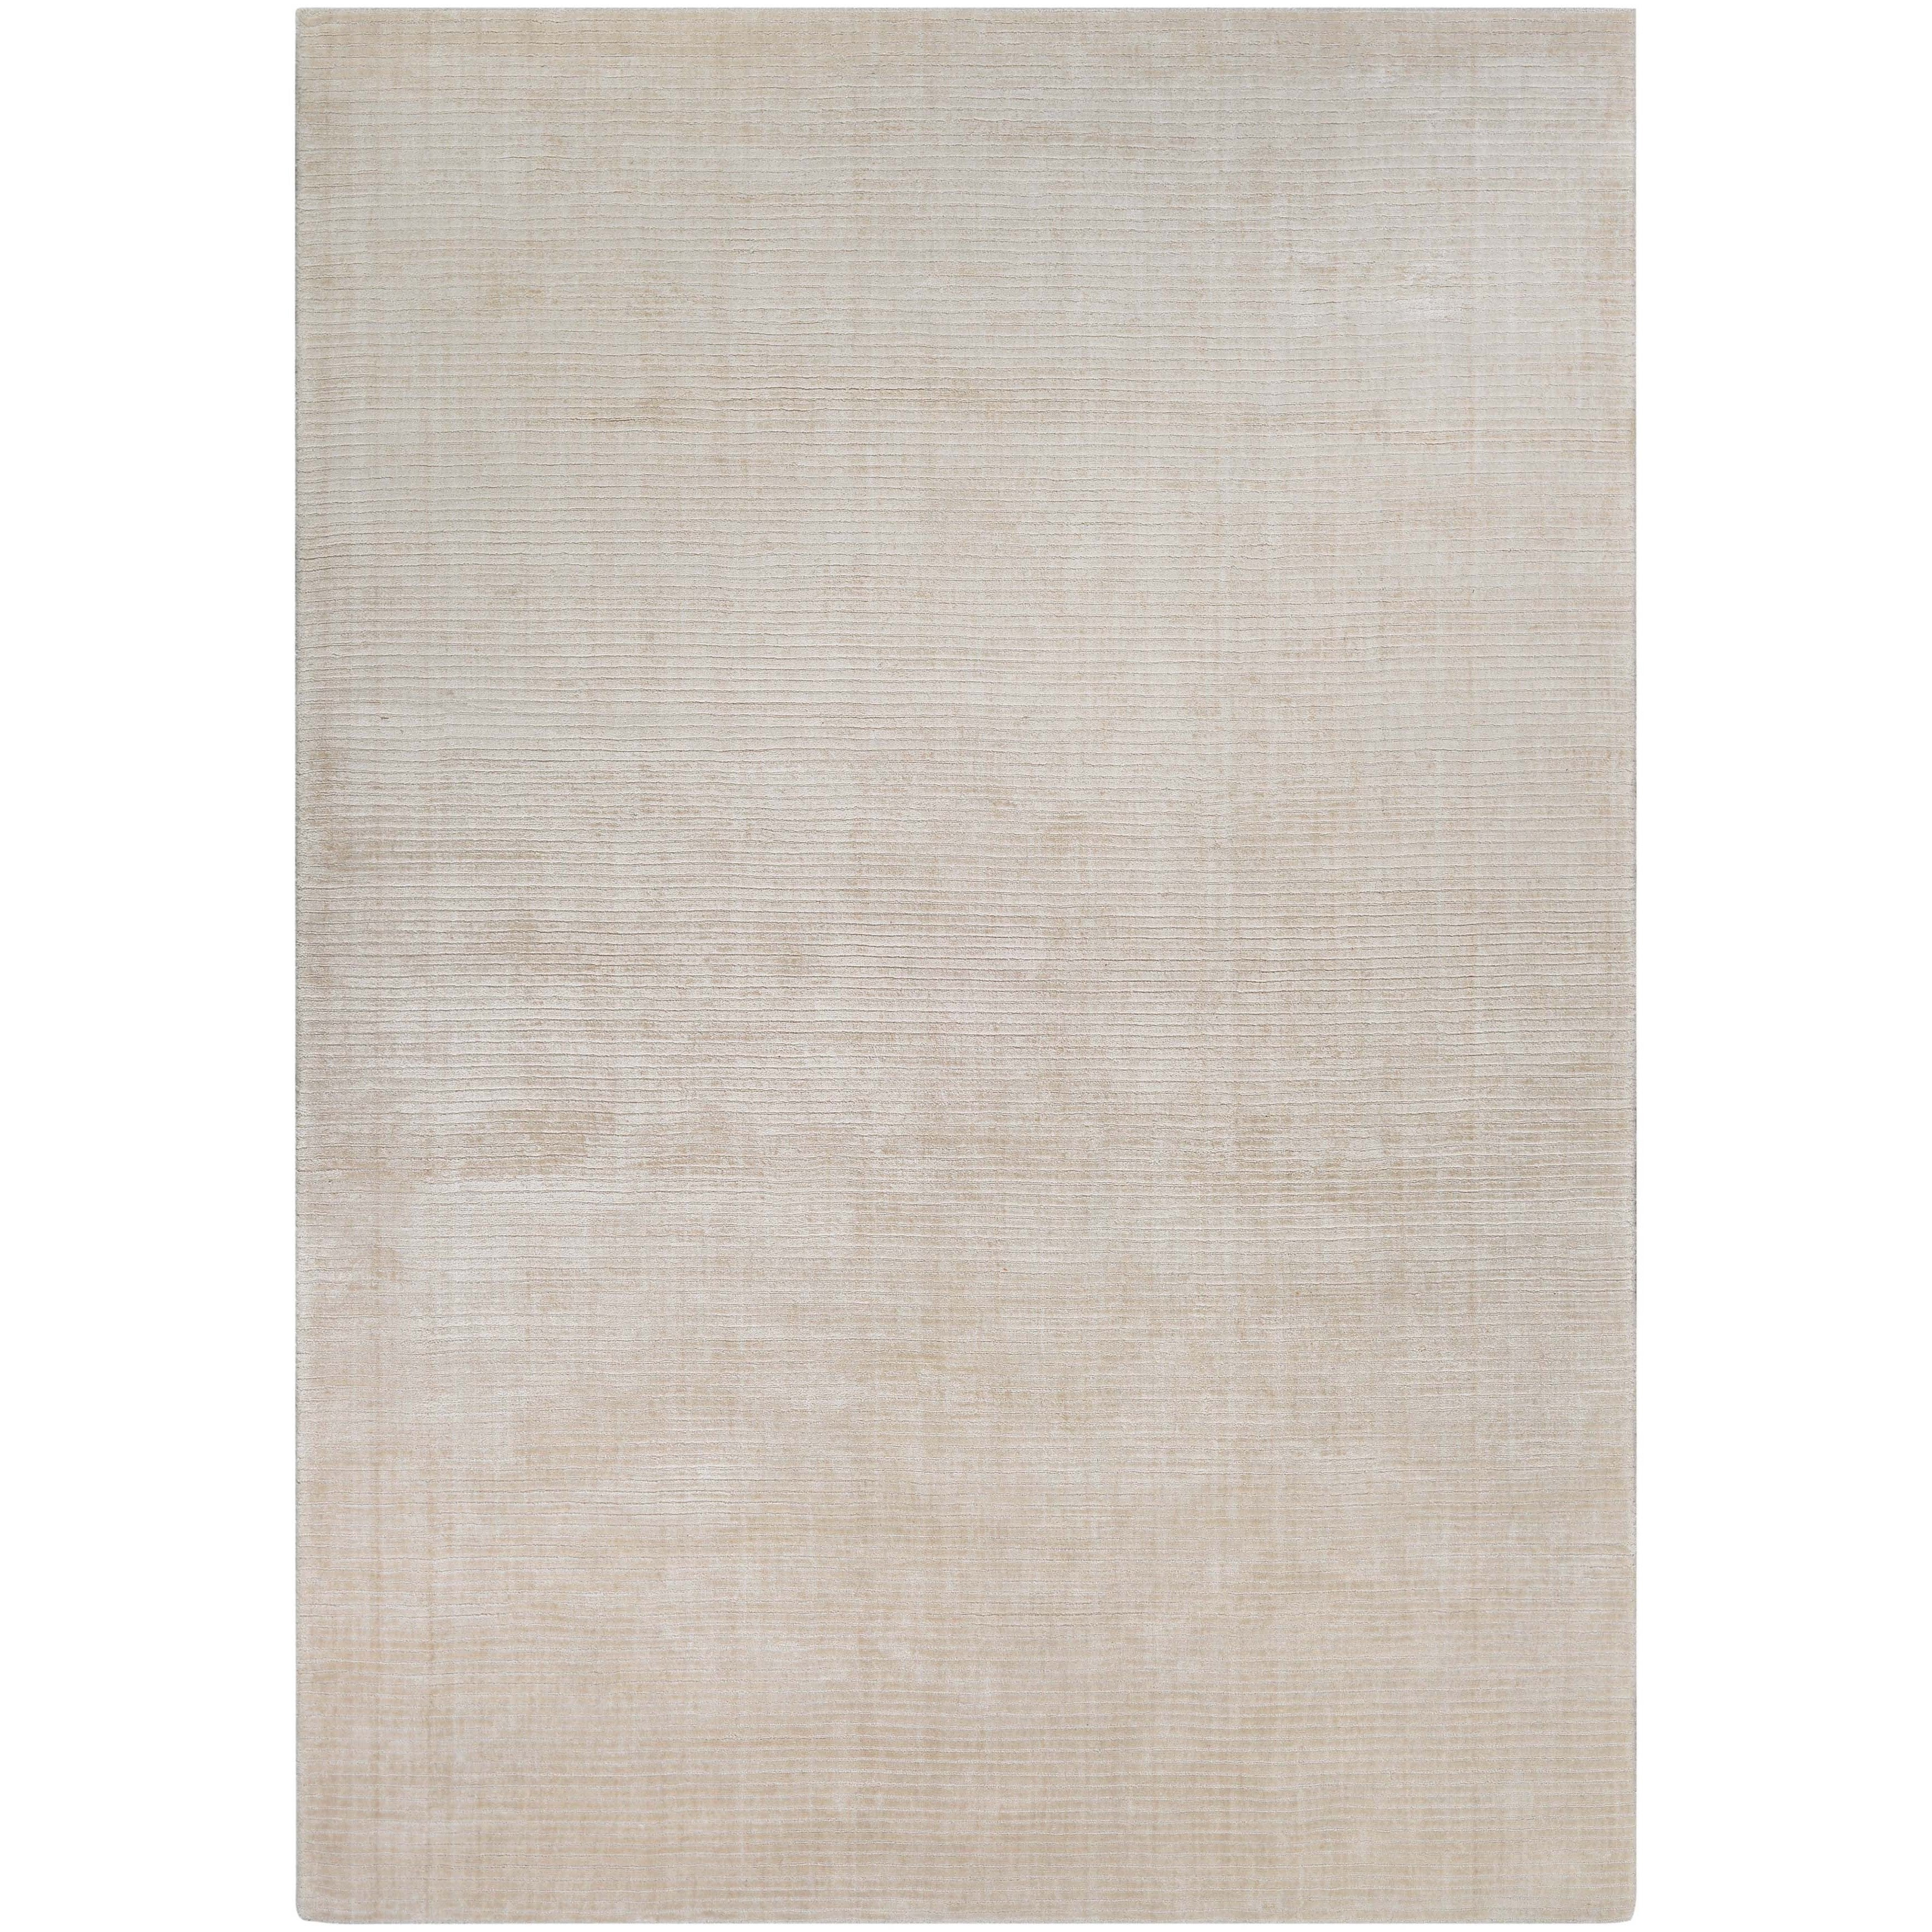 Couristan Royals Linea Straw Area Rug - 2' x 4' (Size 2' ...